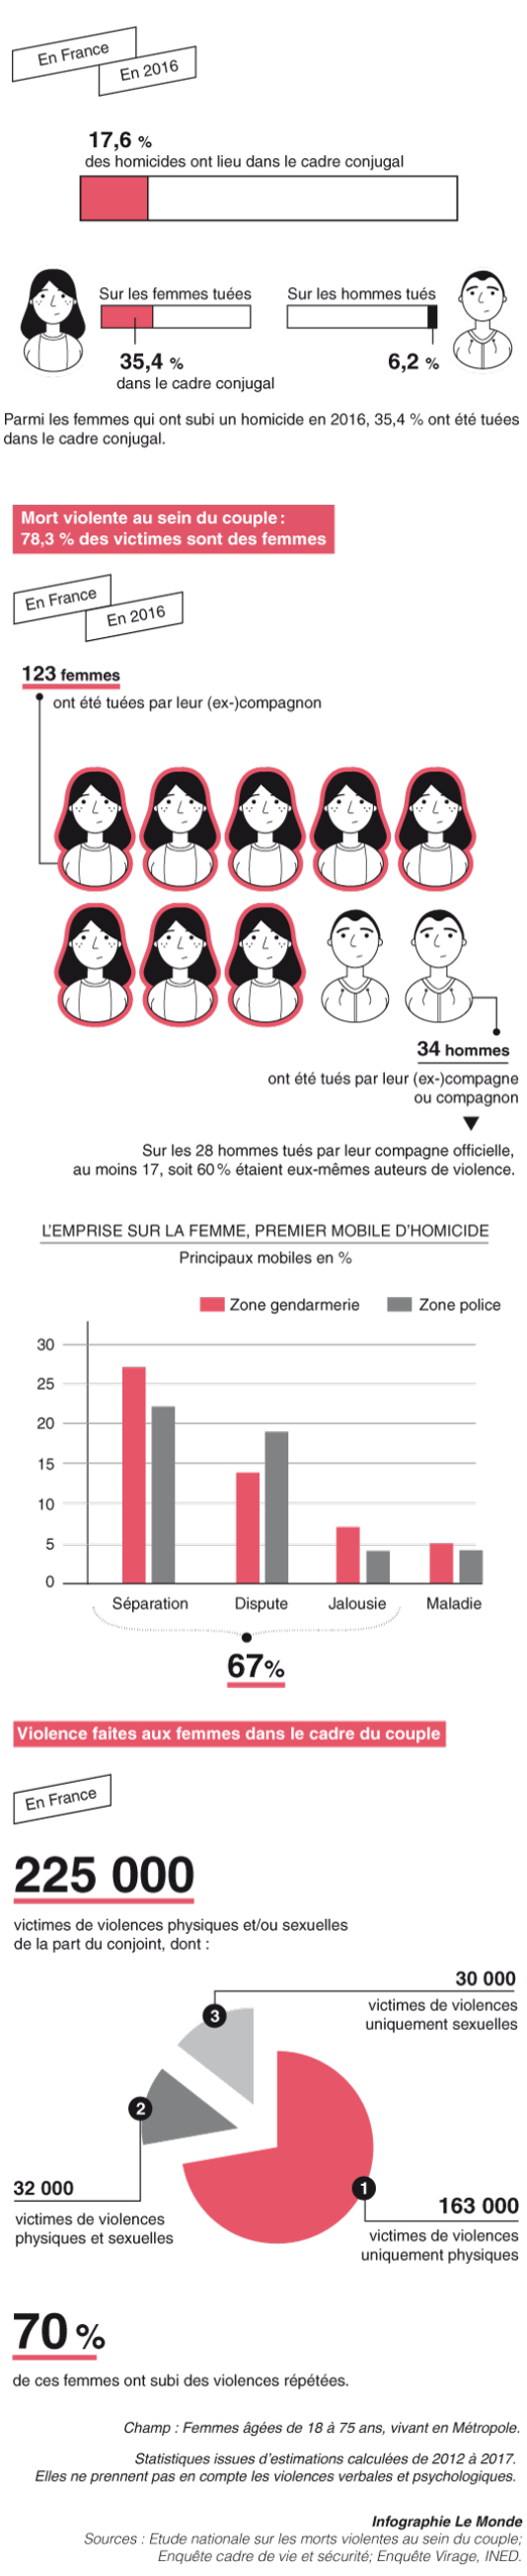 Féminicides Violences conjugales